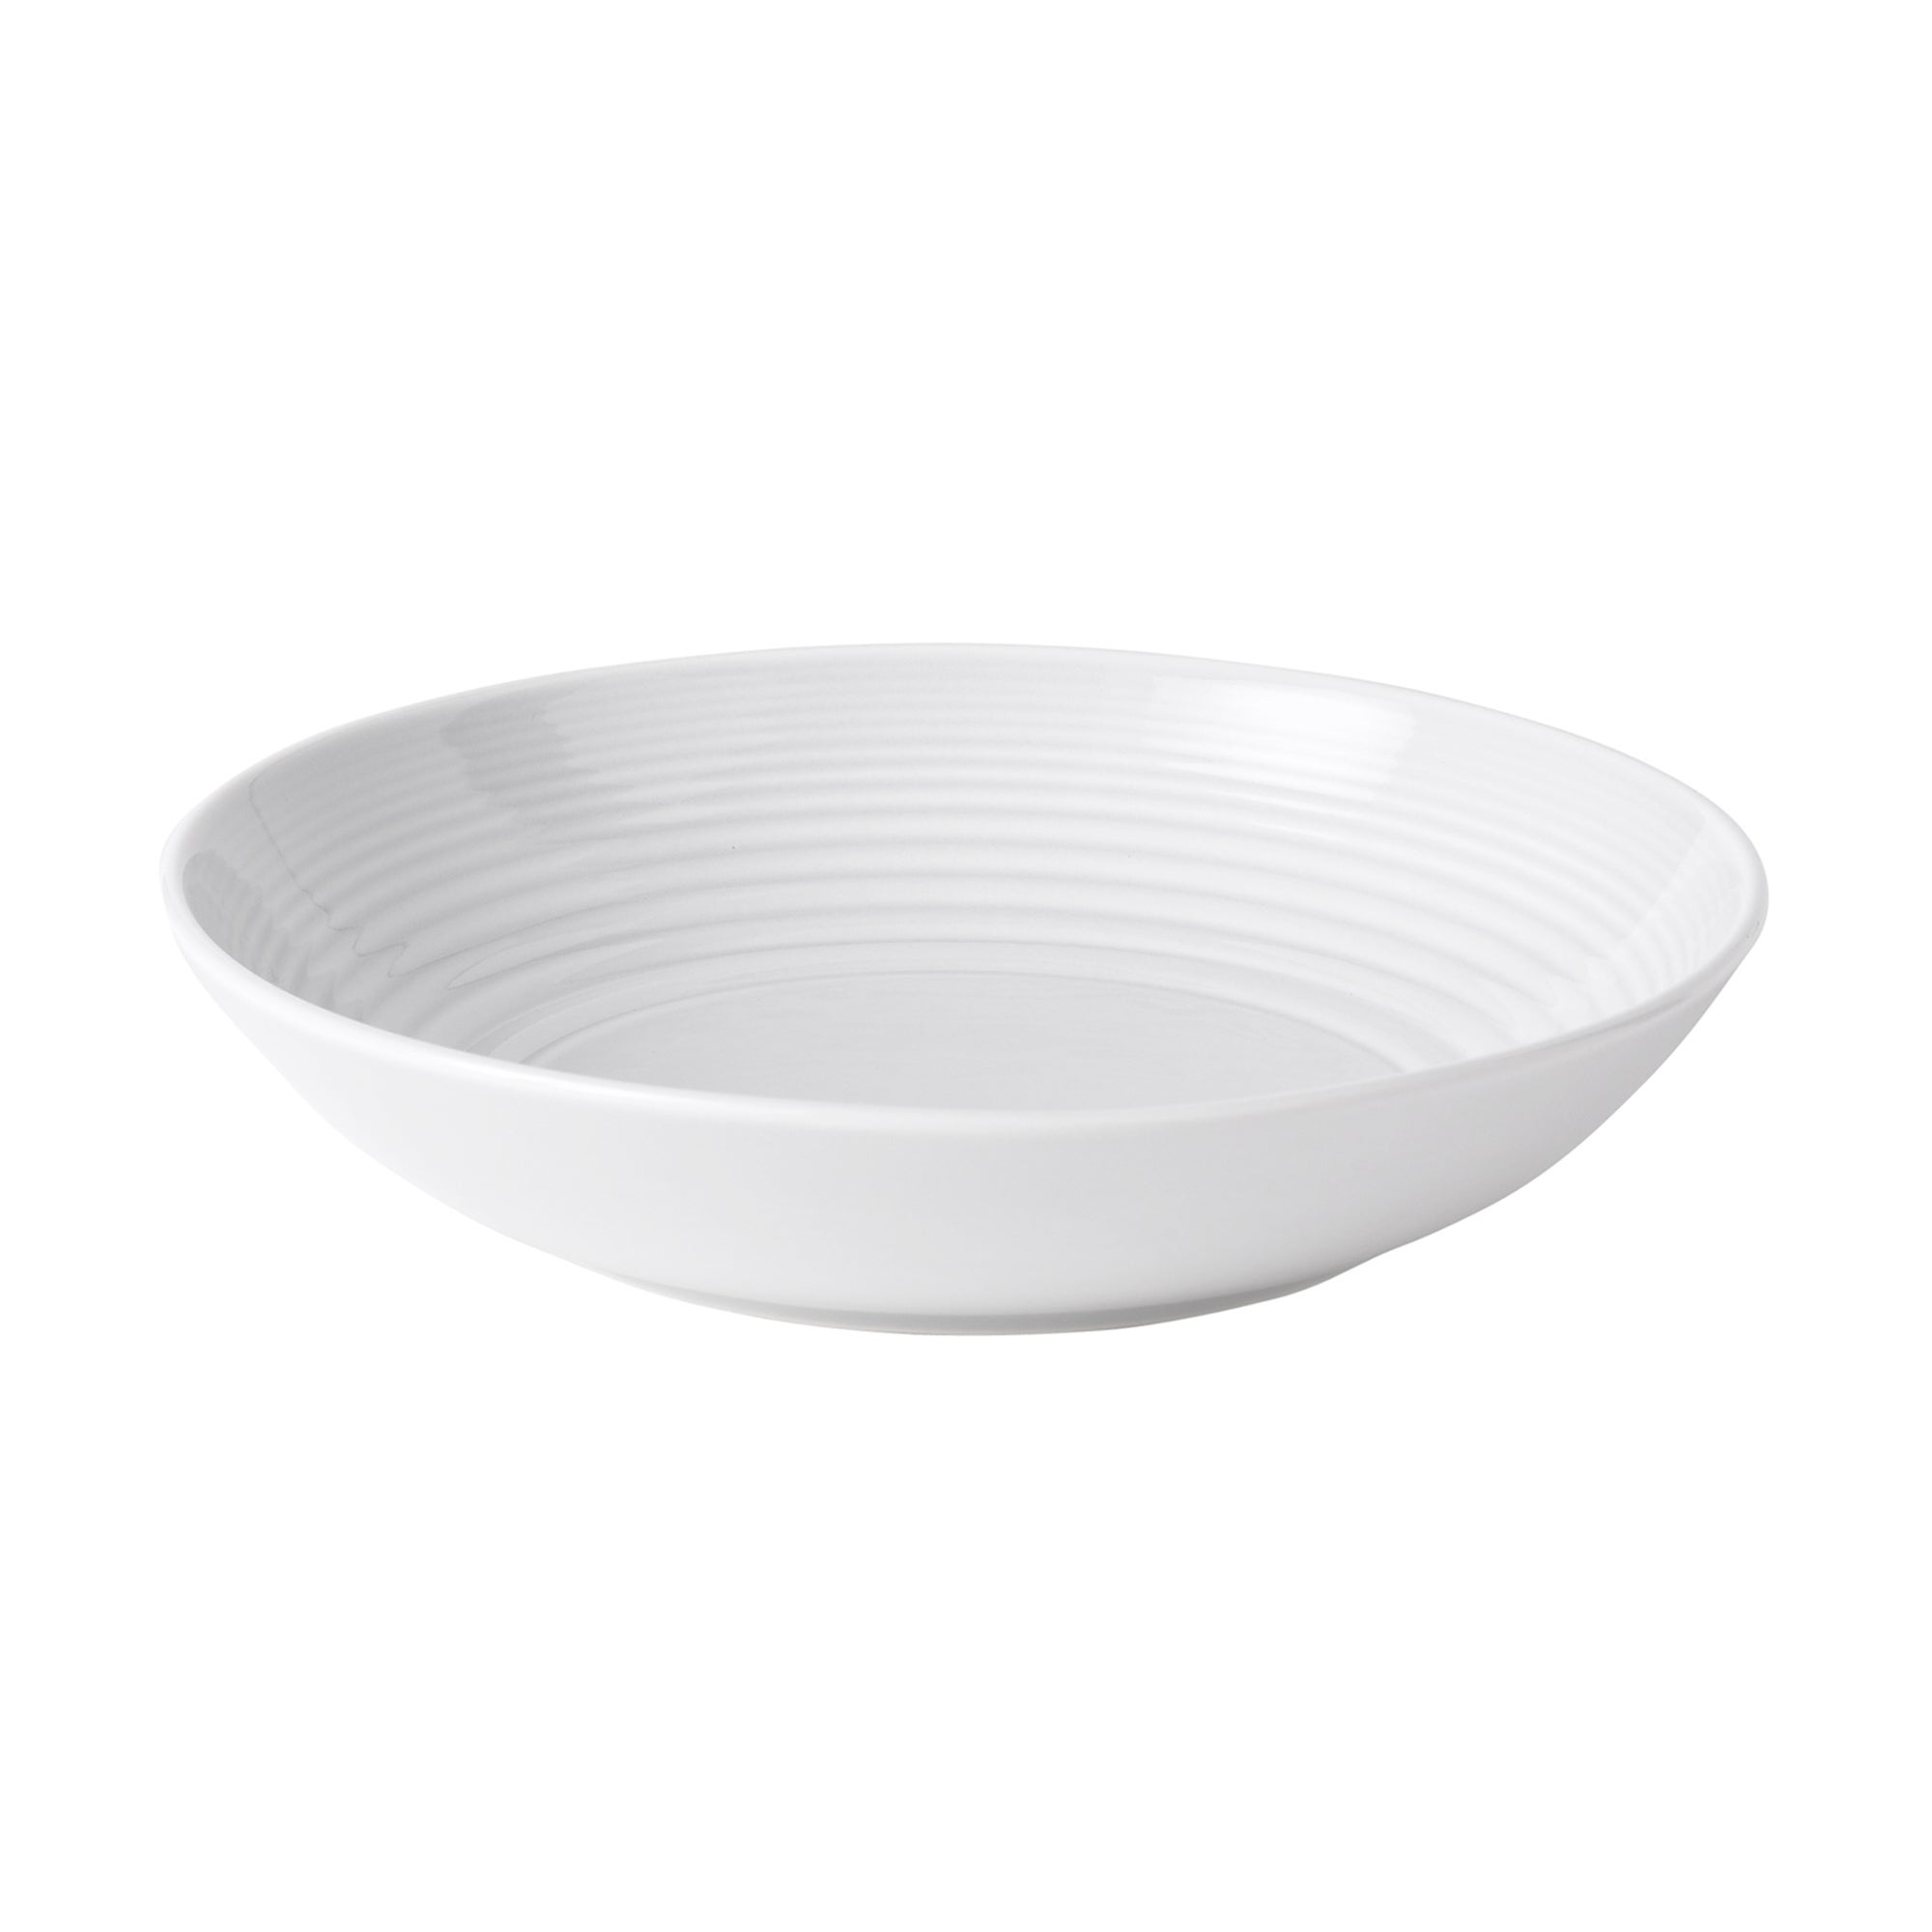 Click to view product details and reviews for Gordon Ramsay By Royal Doulton White Maze Pasta Bowl White.